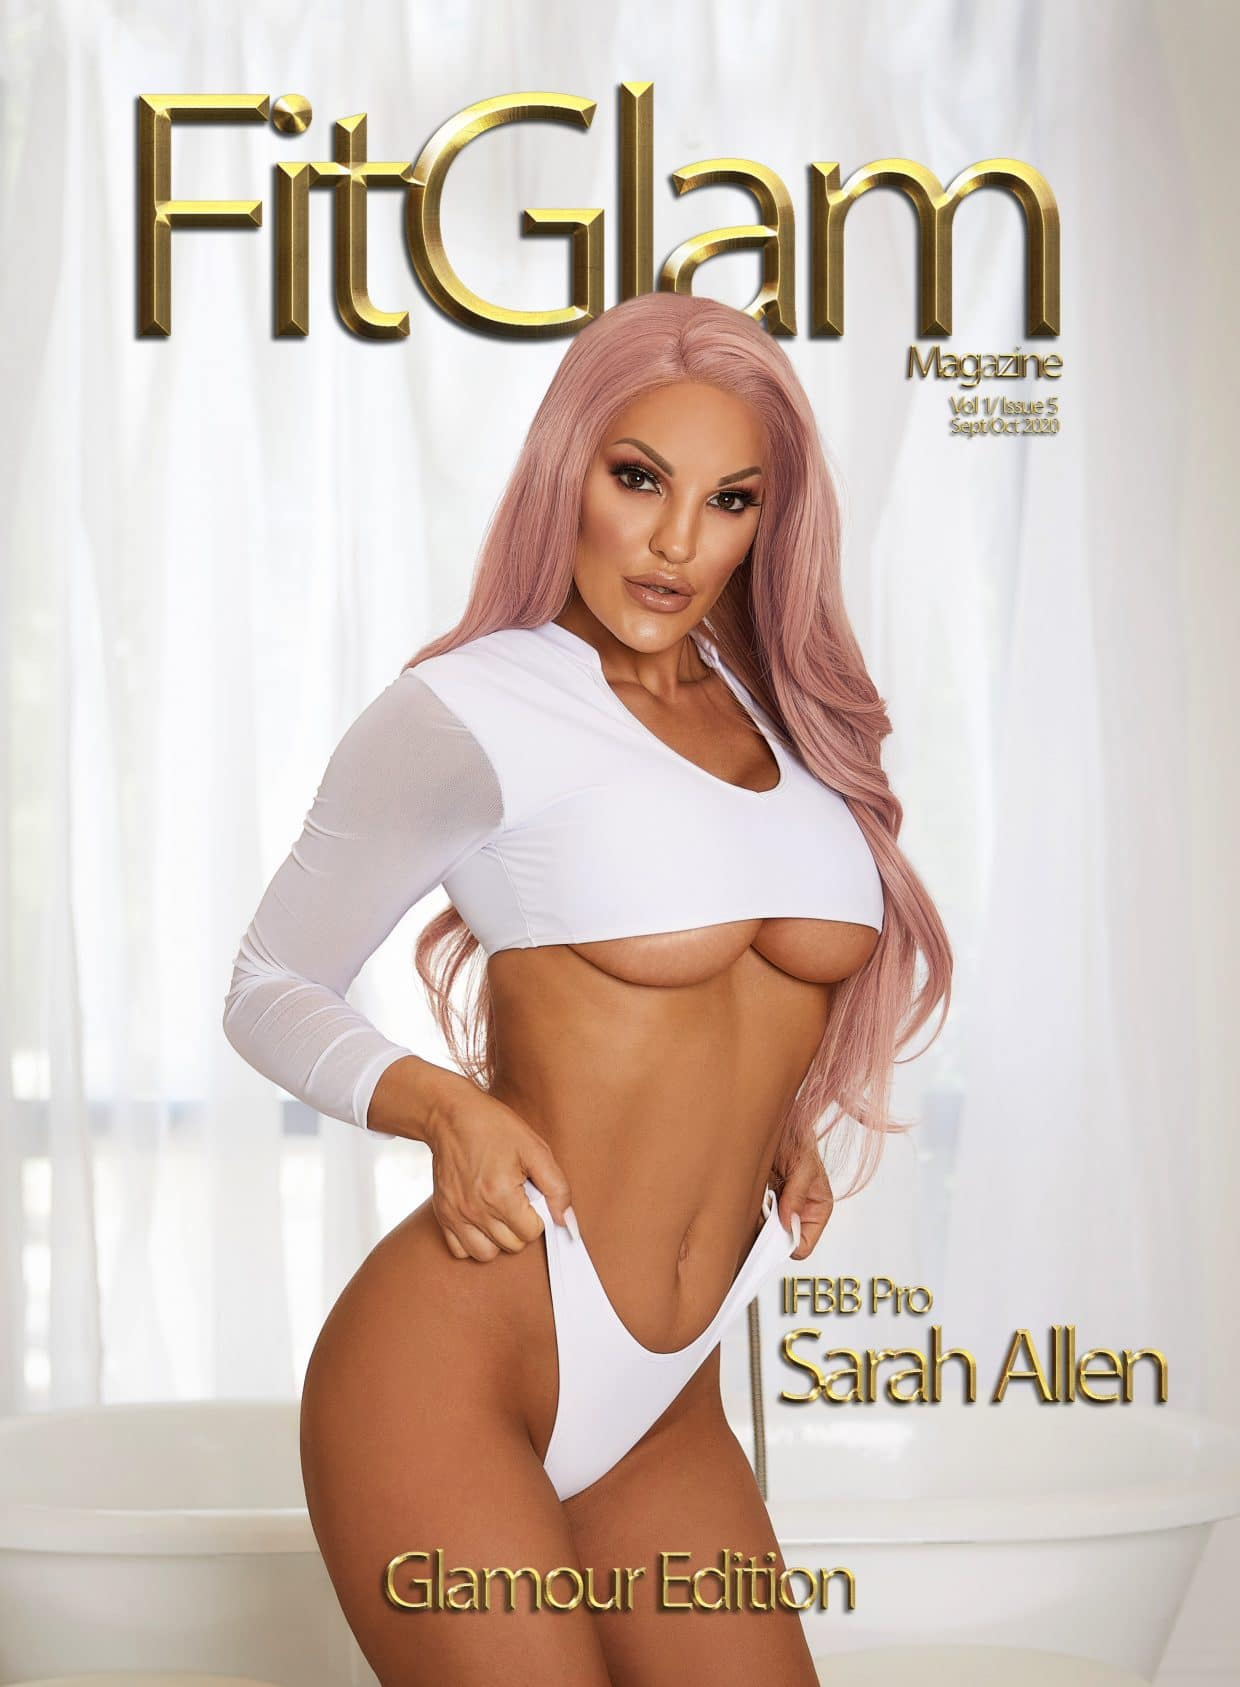 Fit Glam Magazine - September 2020 - Glamour Edition 1